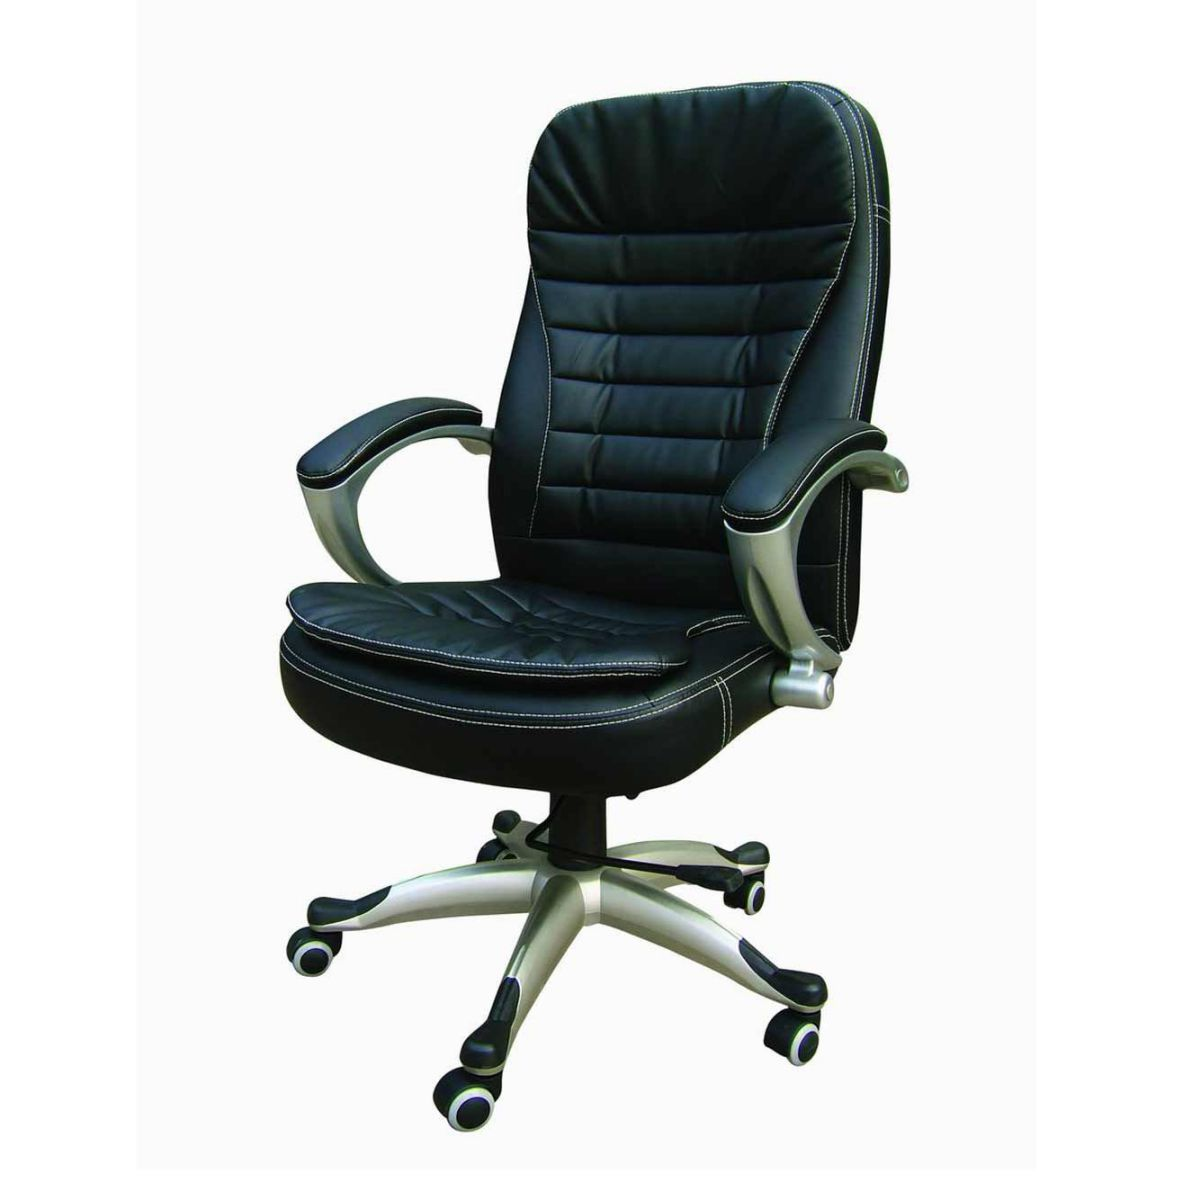 chair lumbar support minnie desk orthopedic office chairs do we need them